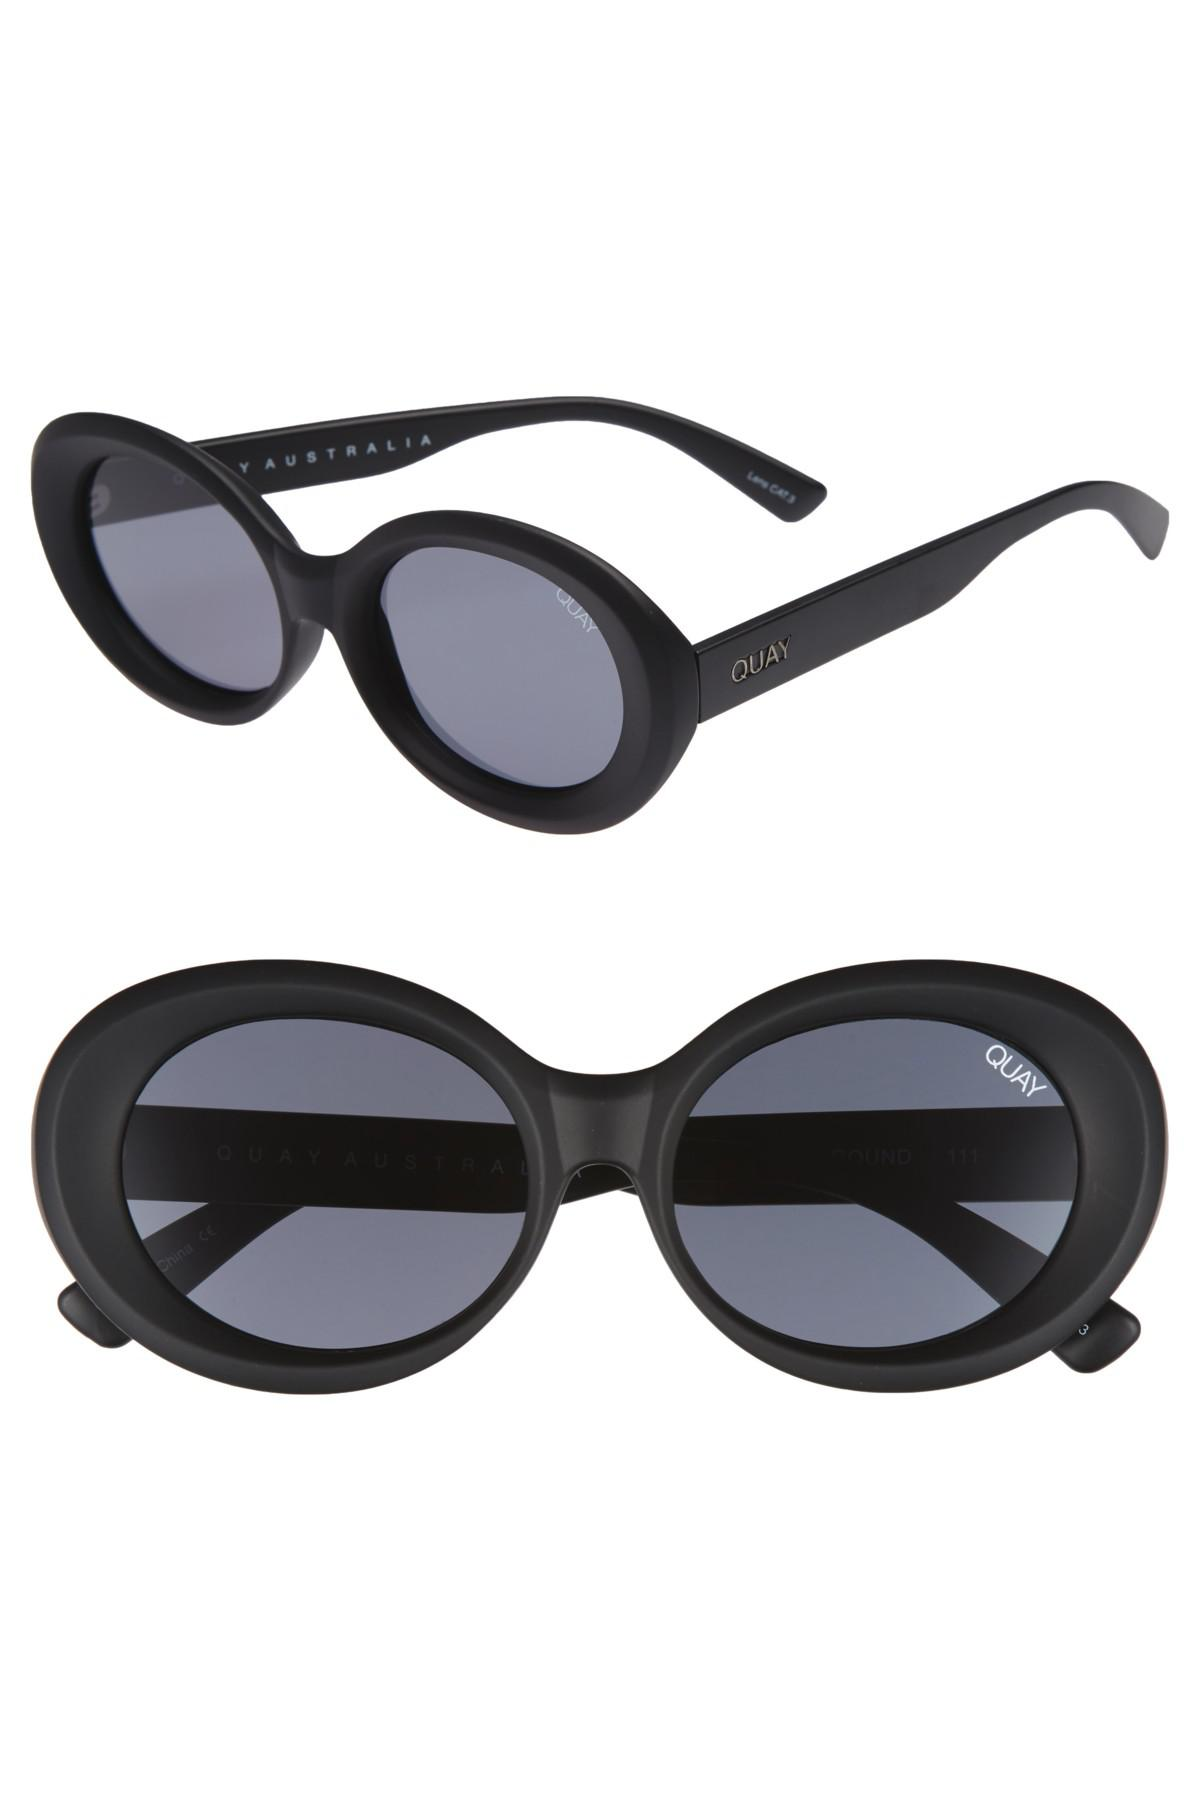 77a8ae7e68 Lyst - Quay Mess Around 52mm Oval Sunglasses in Black